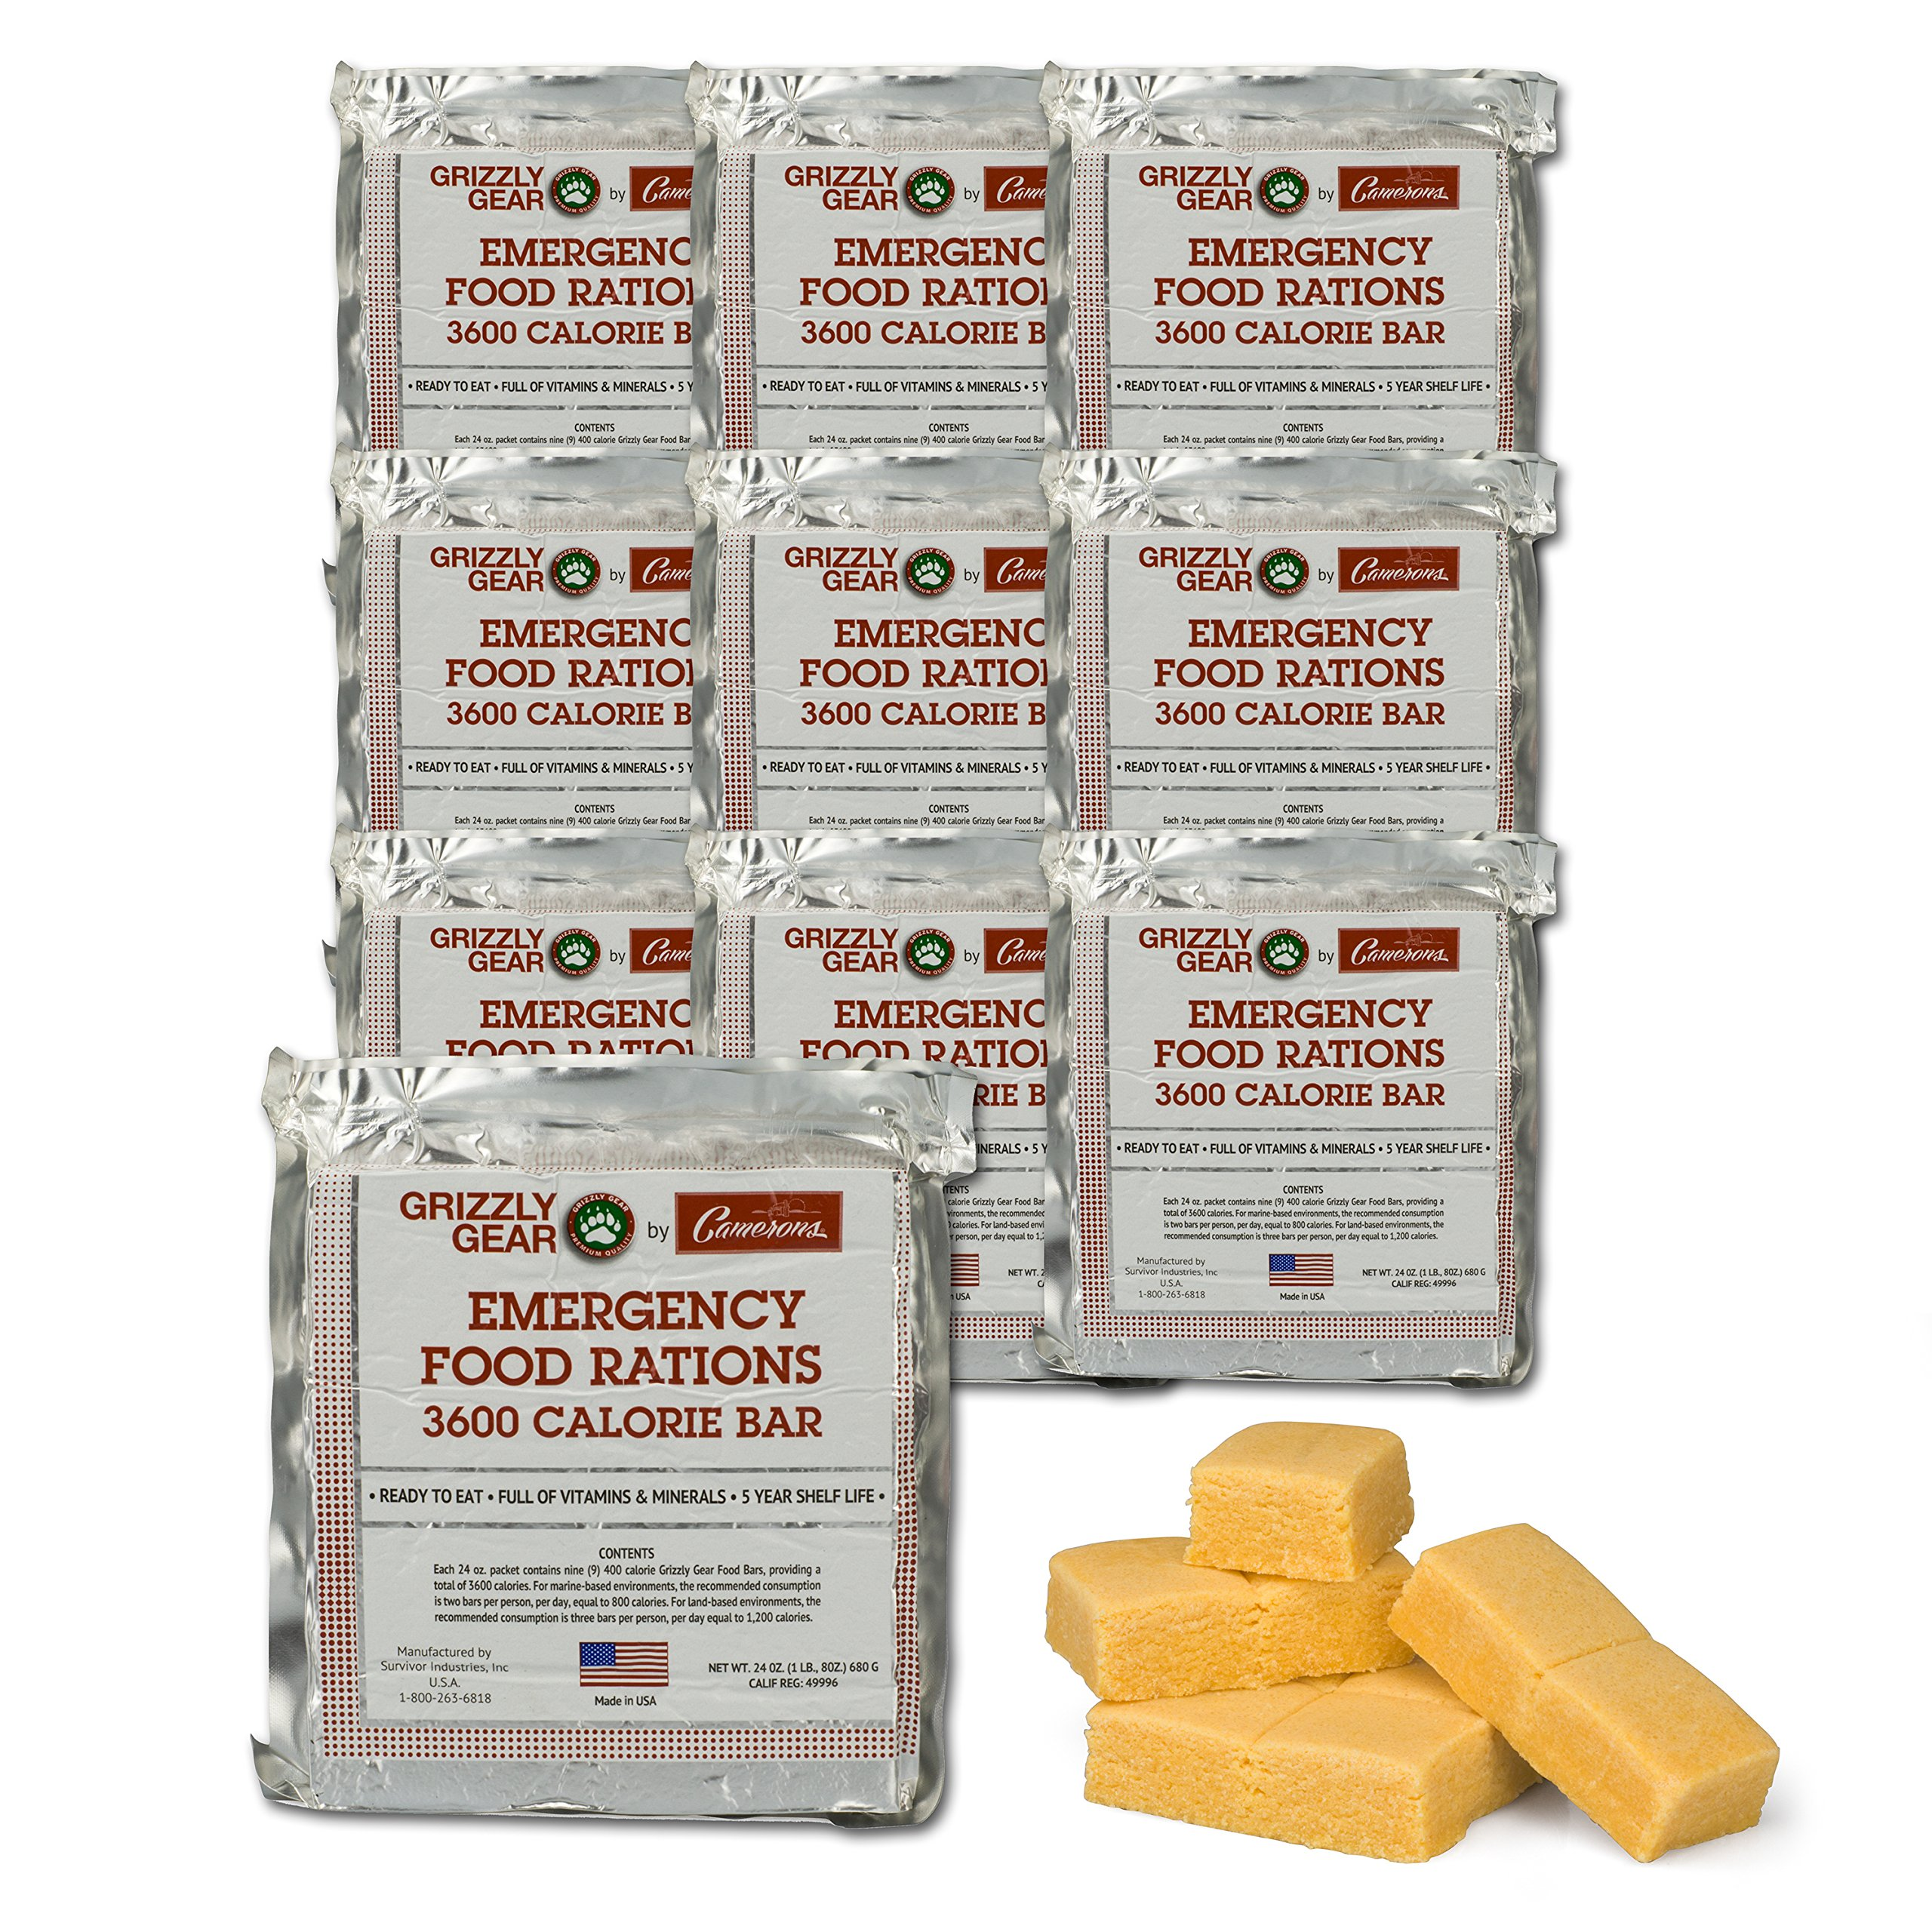 Emergency Food Rations Case of 10-3600 Calorie Bars - 30 Day Supply- Less Sugar and More Nutrients Than Other Leading Brands- (5 Year Shelf Life) by Grizzly Gear